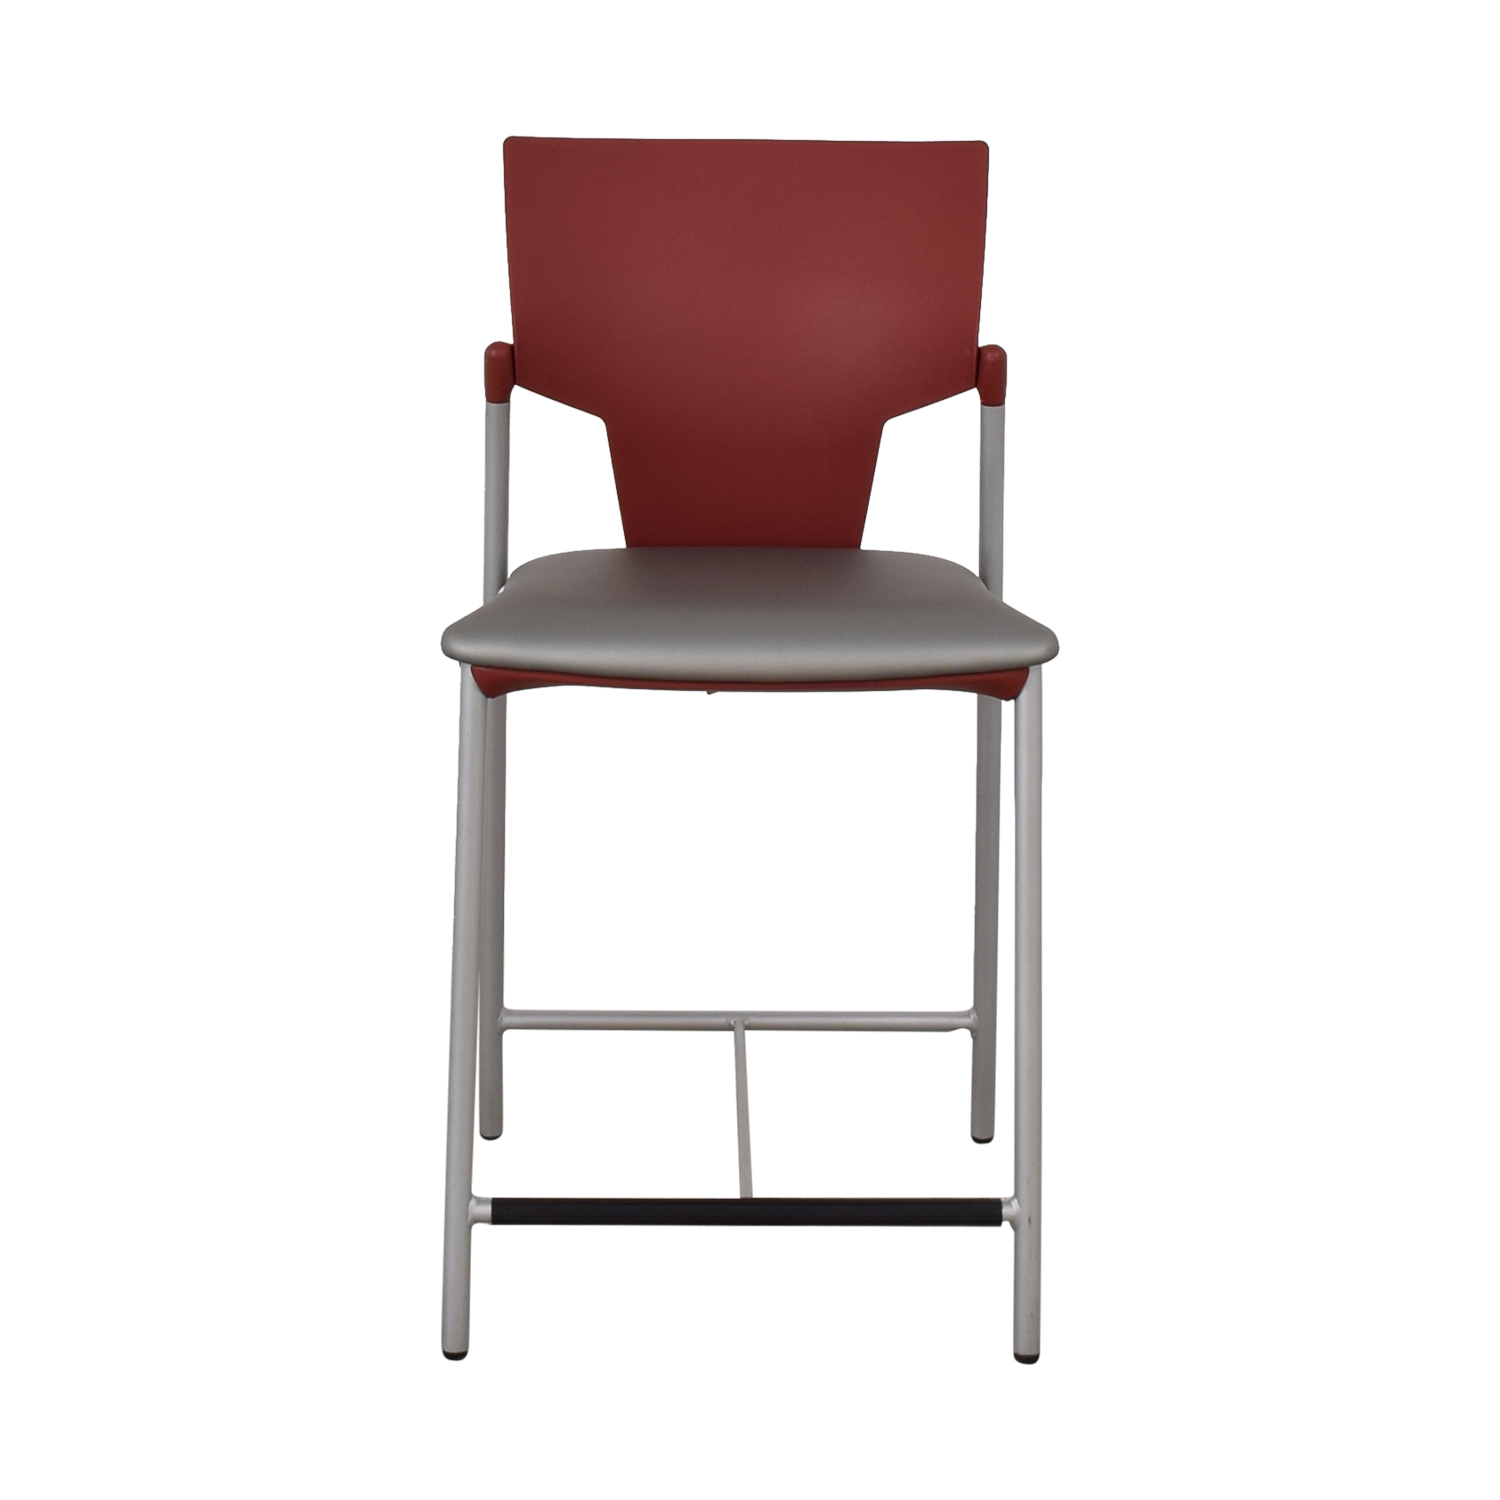 Officeworks Bar Stool / Chairs